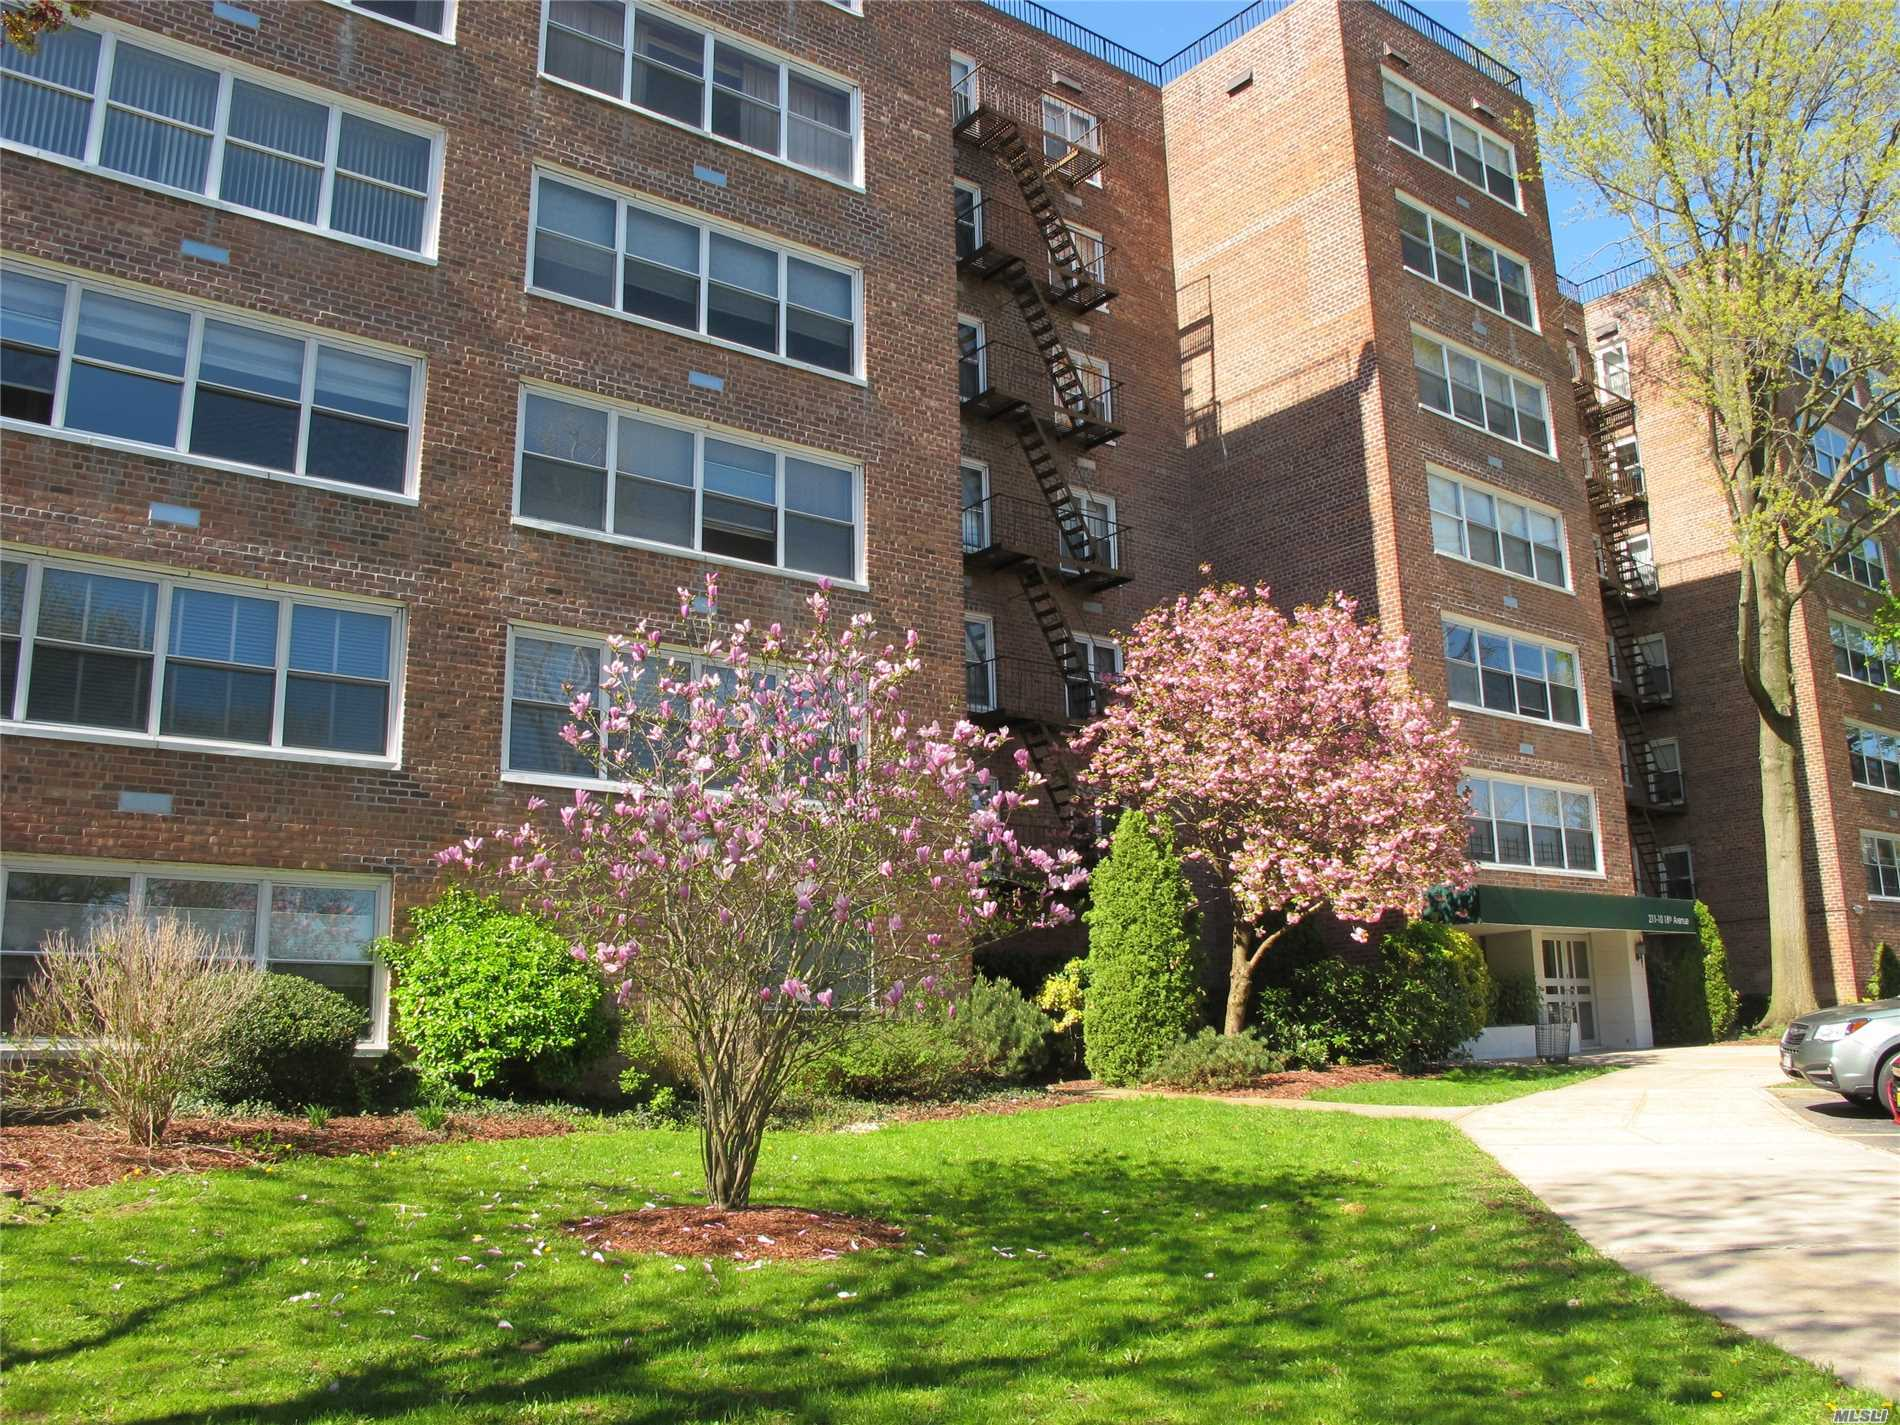 MAGNIFICENT, BRIGHT & RENOVATED HUGE 1500 SF OF LIVING SPACE. 3BR'S 2 FULL BATH IN THE BEAUTIFUL BAY TERRACE NEIGHBORHOOD. DISTANCE FROM SAMUEL FIELD COMMUNITY POOL, TENNIS, BASKETBALL AND PS 169 & BELL ACADEMY MIDDLE SCHOOL. DISTANCE FROM THE BUILDING DIRECT BUS TO MANHATTAN QM2, QM32 AND Q28 TO FLUSHING. Q13 TO LIRR. 28TH MINUTES TO MANHATTAN.EASY ACCESS TO MAJOR TRANSPORTATION AND DISTANCE FROM FORT TOTTEN PARK,  LITTLE BAY AND BAYSIDE MARINA.